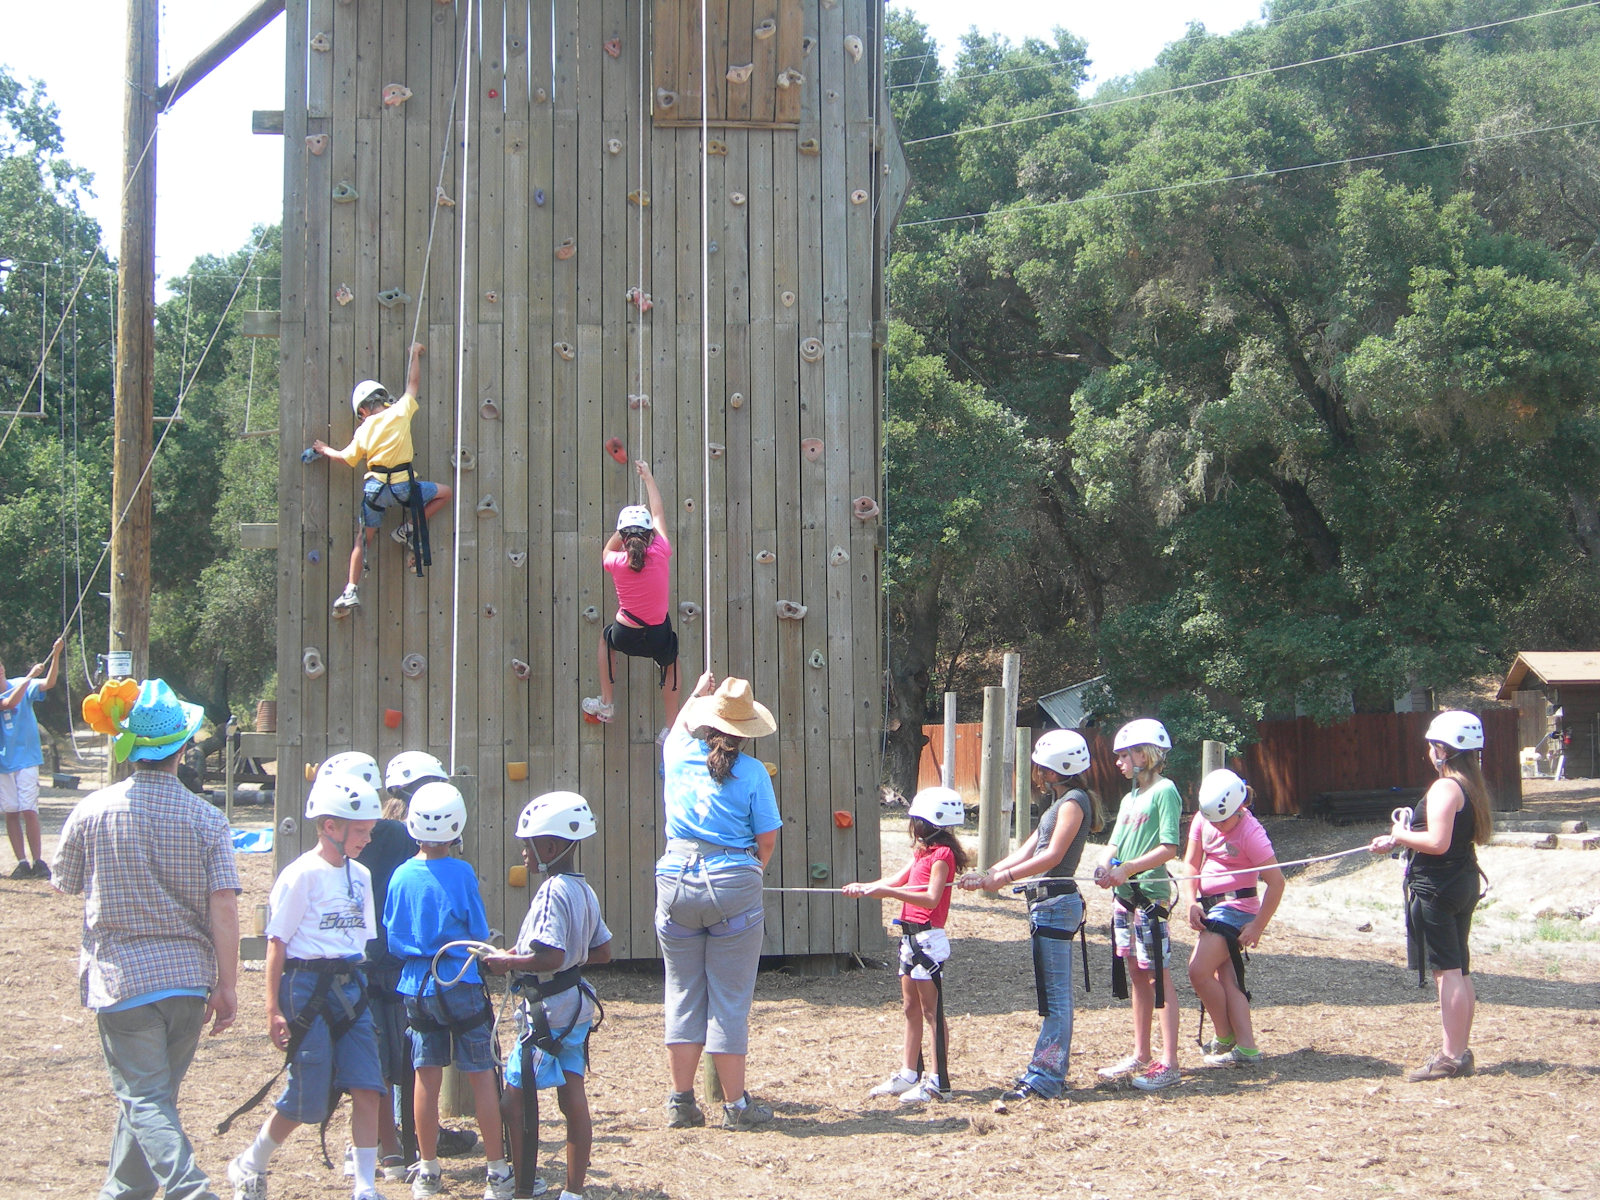 Fitness climbing rock wall with people